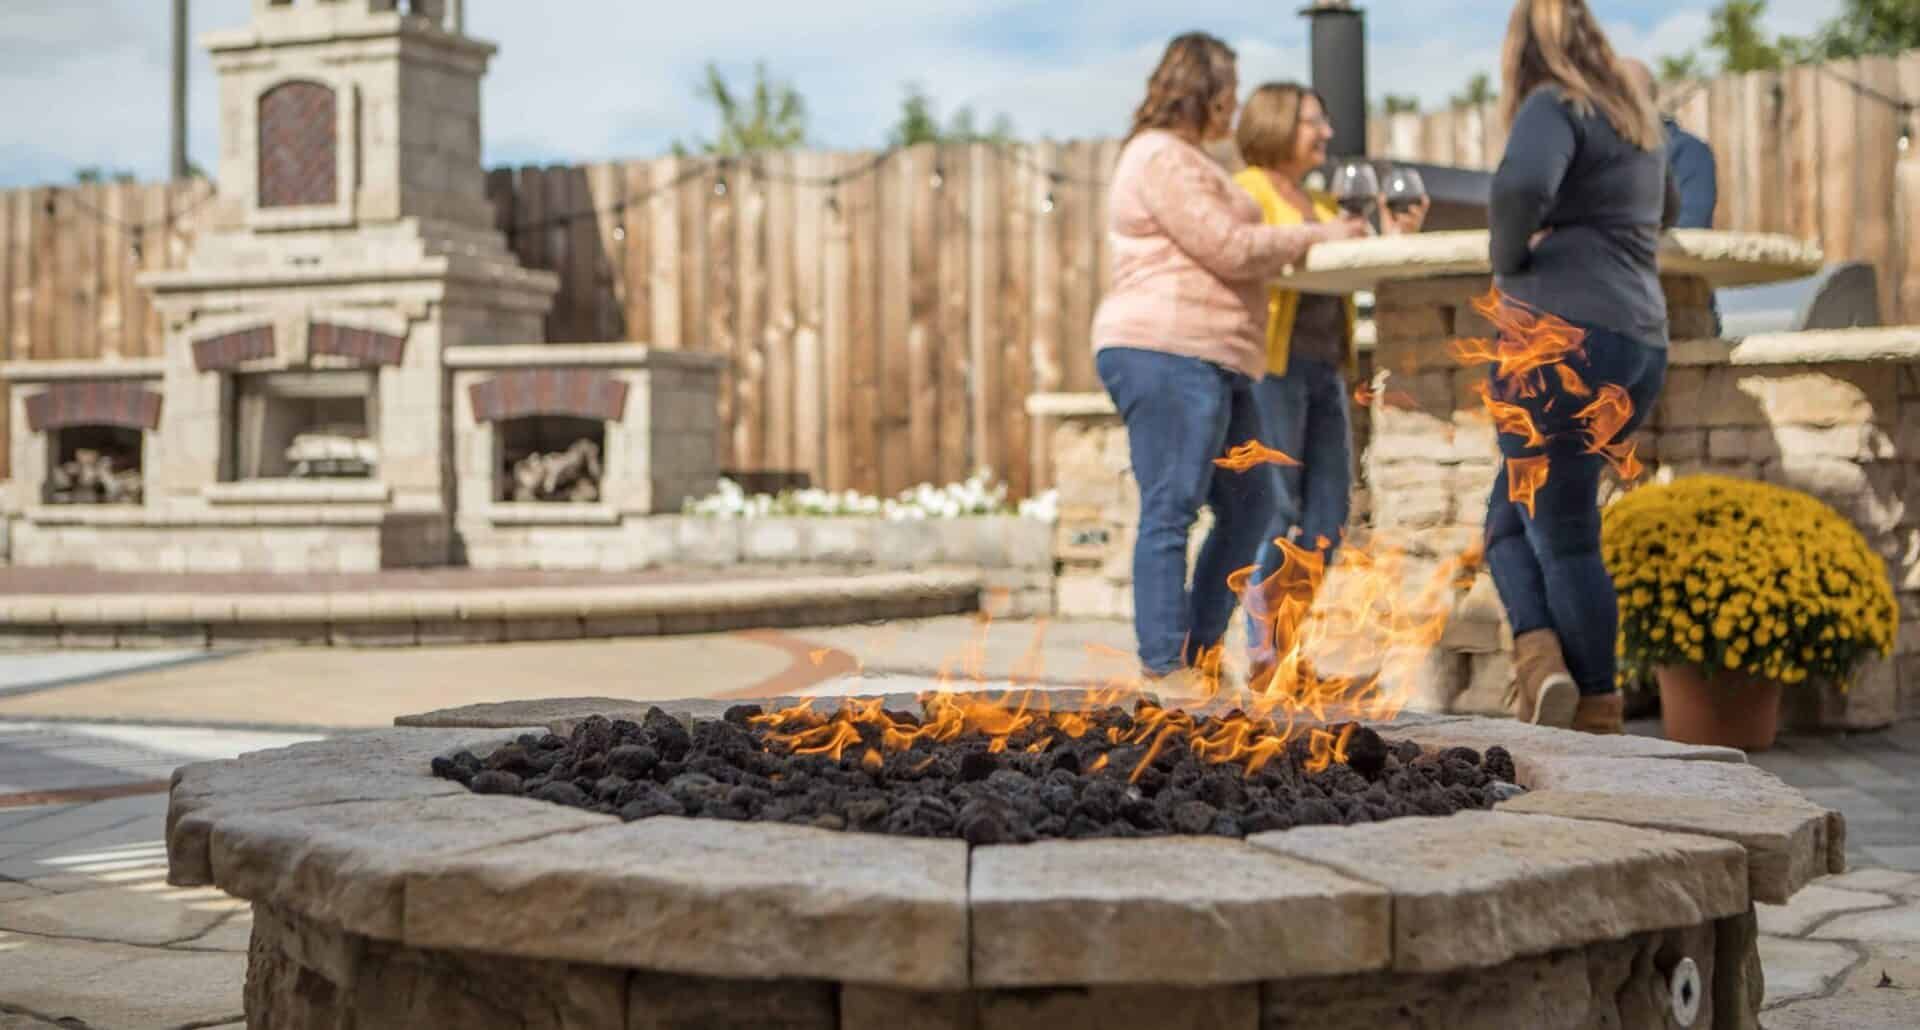 Stone Fire Pit - It's Built with Kings